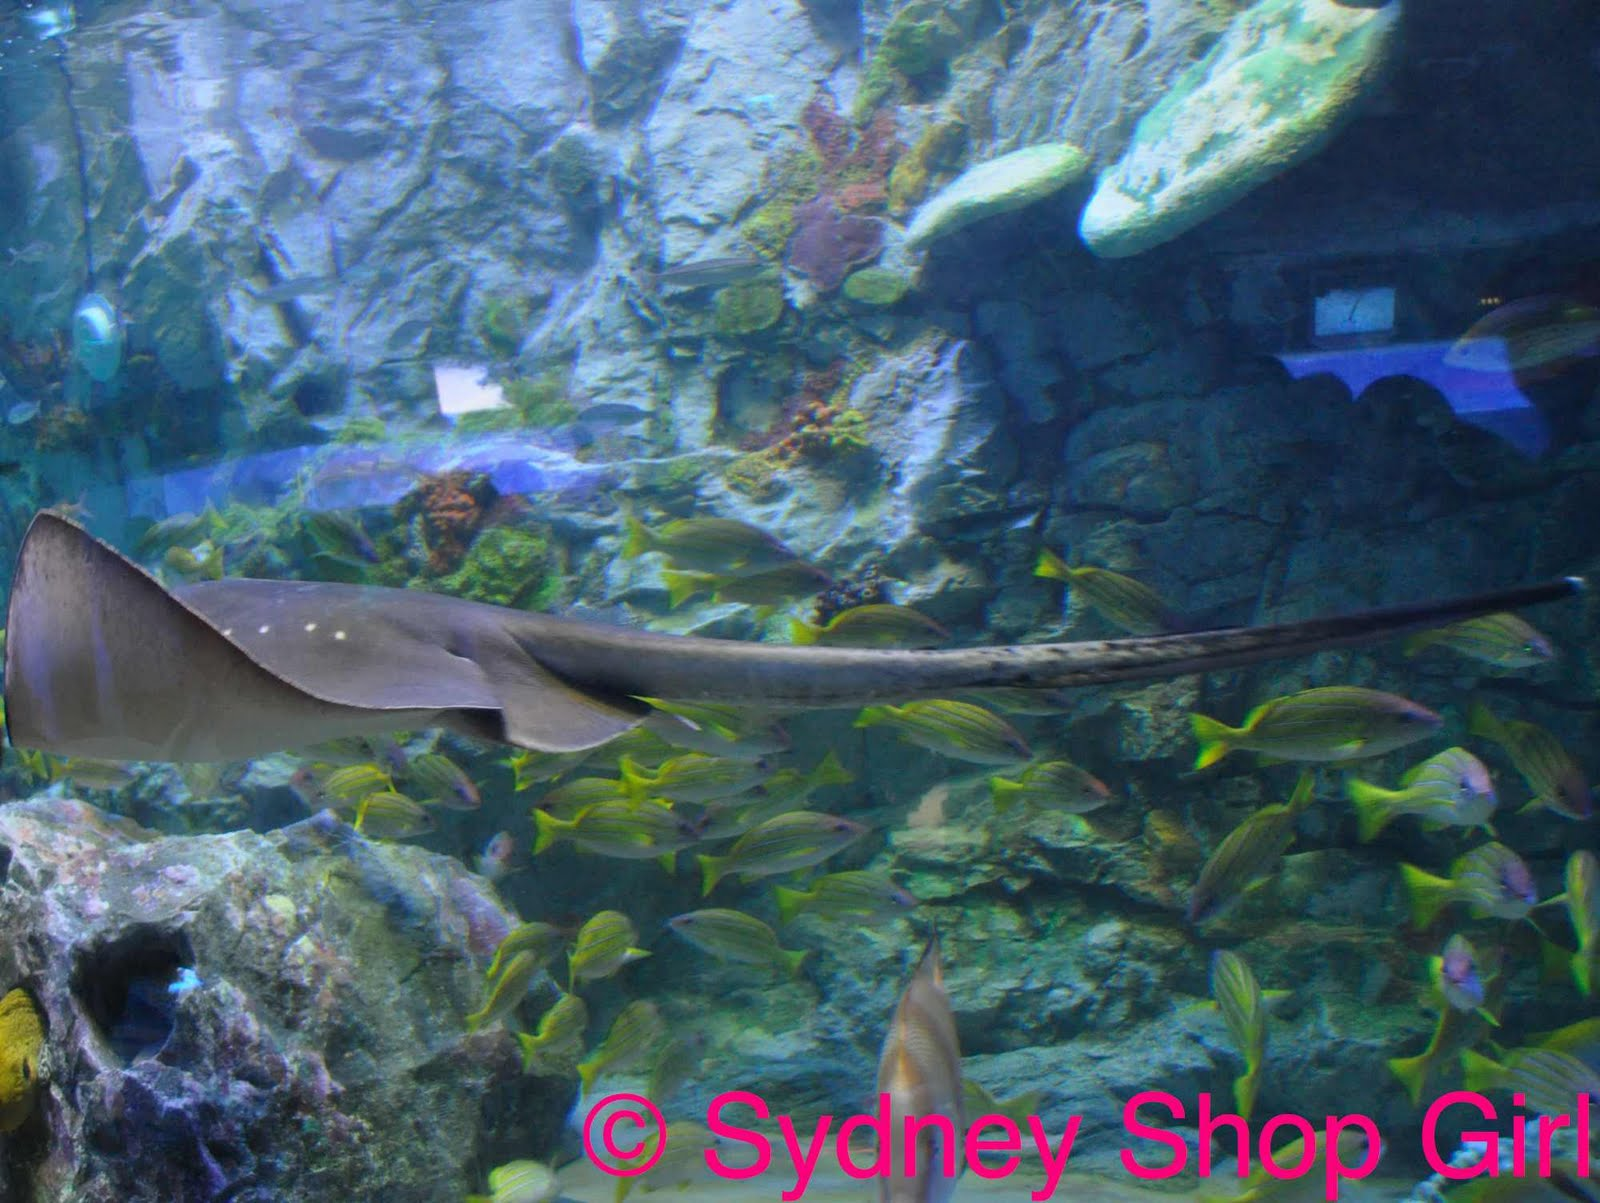 Sydney Shop Girl Distracted Thoughts The Calm Exuded By Aquatic Life